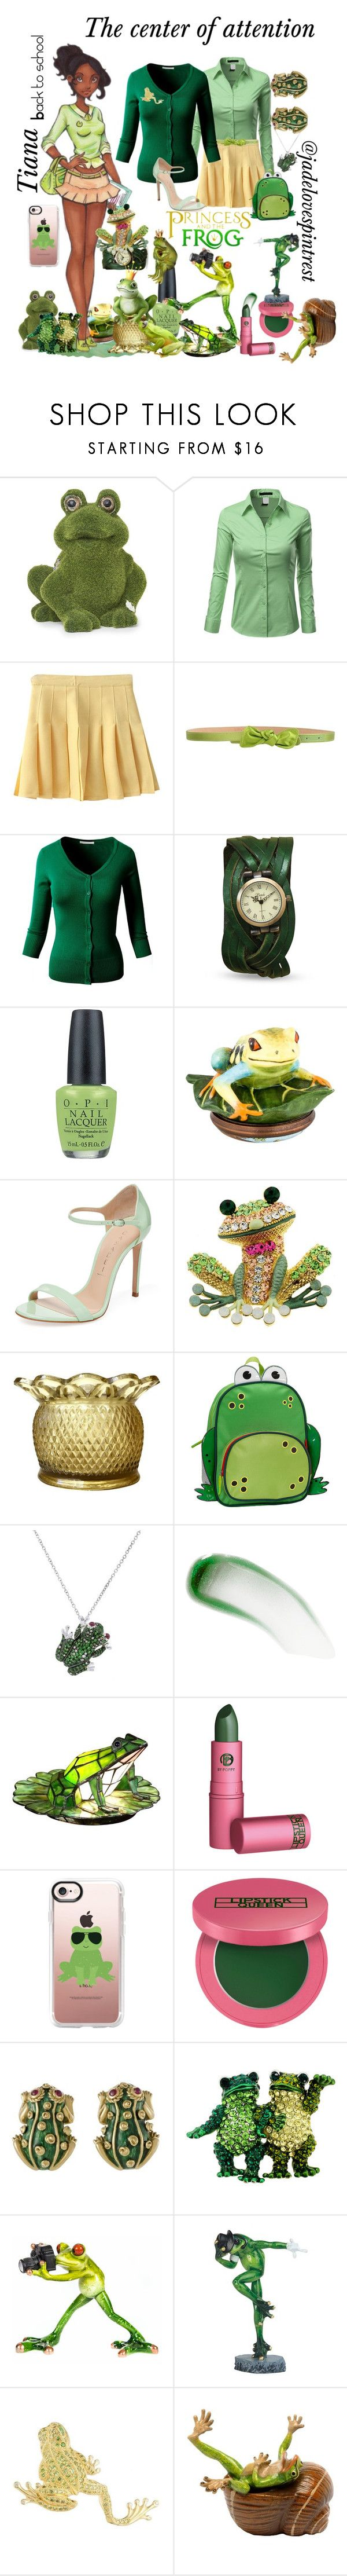 """""""Tiana style: First day of school"""" by jadelovespintrest ❤ liked on Polyvore featuring Doublju, RED Valentino, OPI, Halcyon Days, Casadei, Rockland Luggage, Roberto Coin, Lipstick Queen, Dale Tiffany and Casetify"""